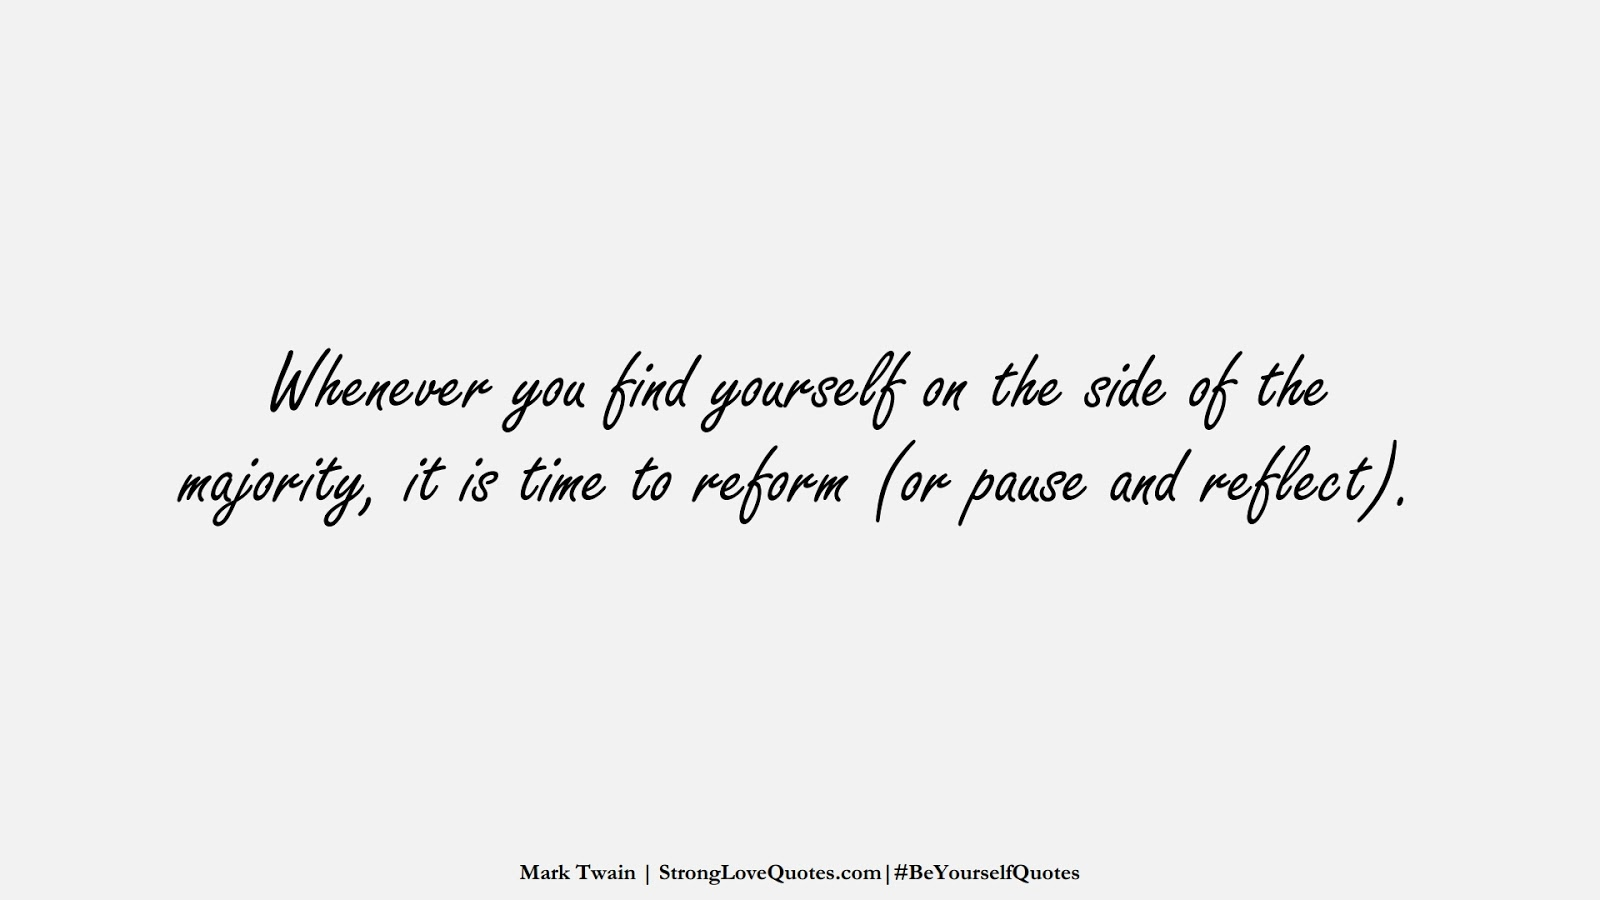 Whenever you find yourself on the side of the majority, it is time to reform (or pause and reflect). (Mark Twain);  #BeYourselfQuotes